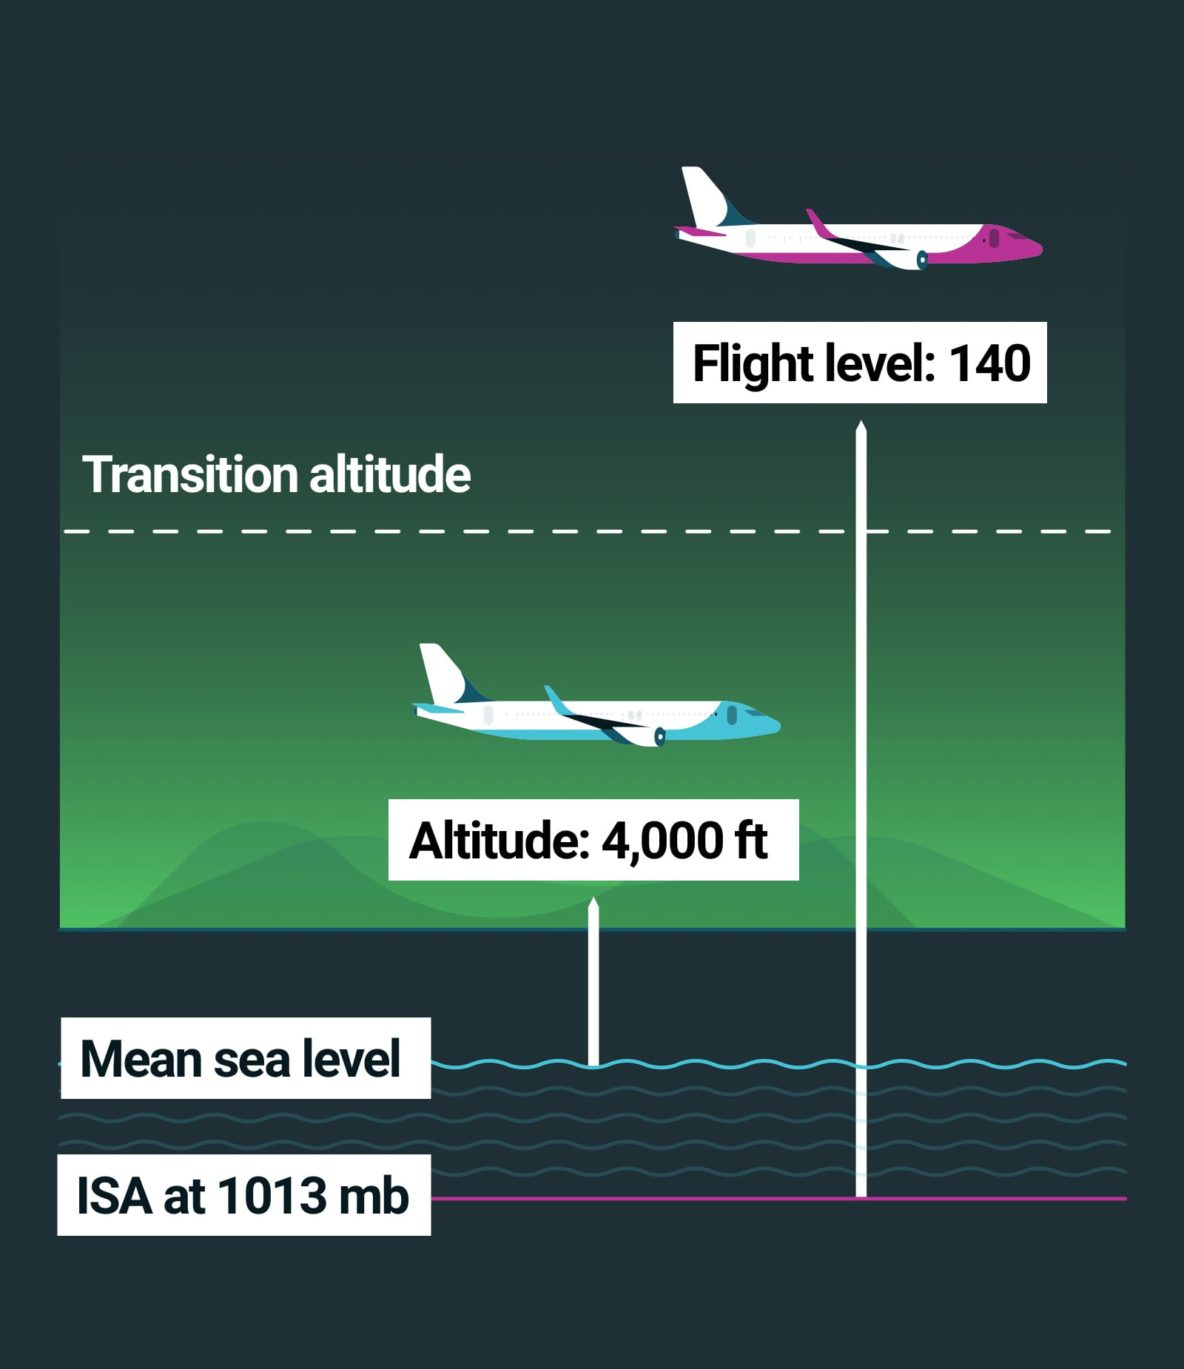 Data visualization about aircraft altitude